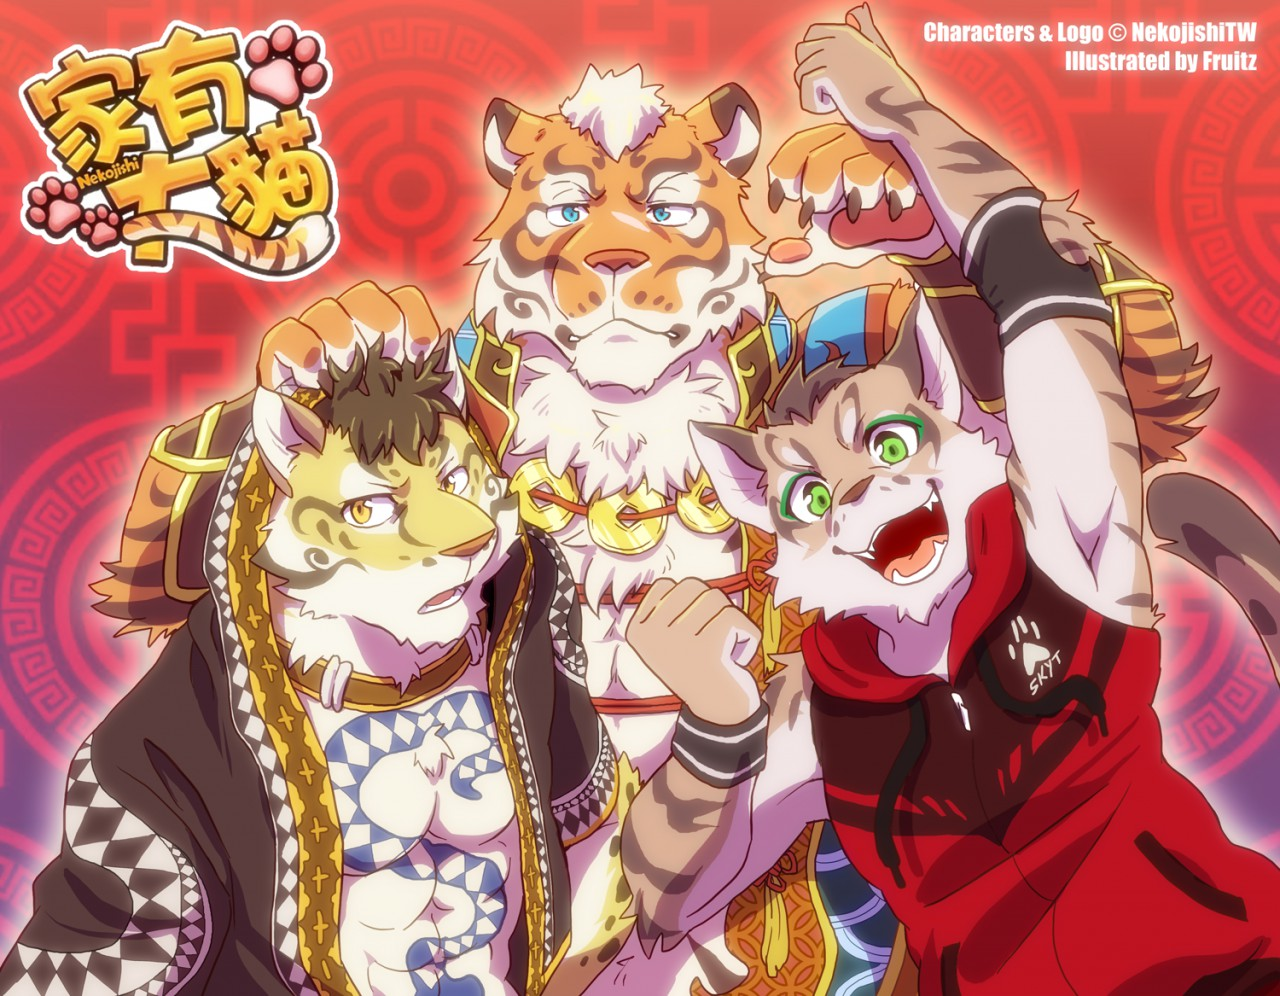 Cute Kid Love Wallpaper Nekojishi Fanart By Fruitz Fur Affinity Dot Net